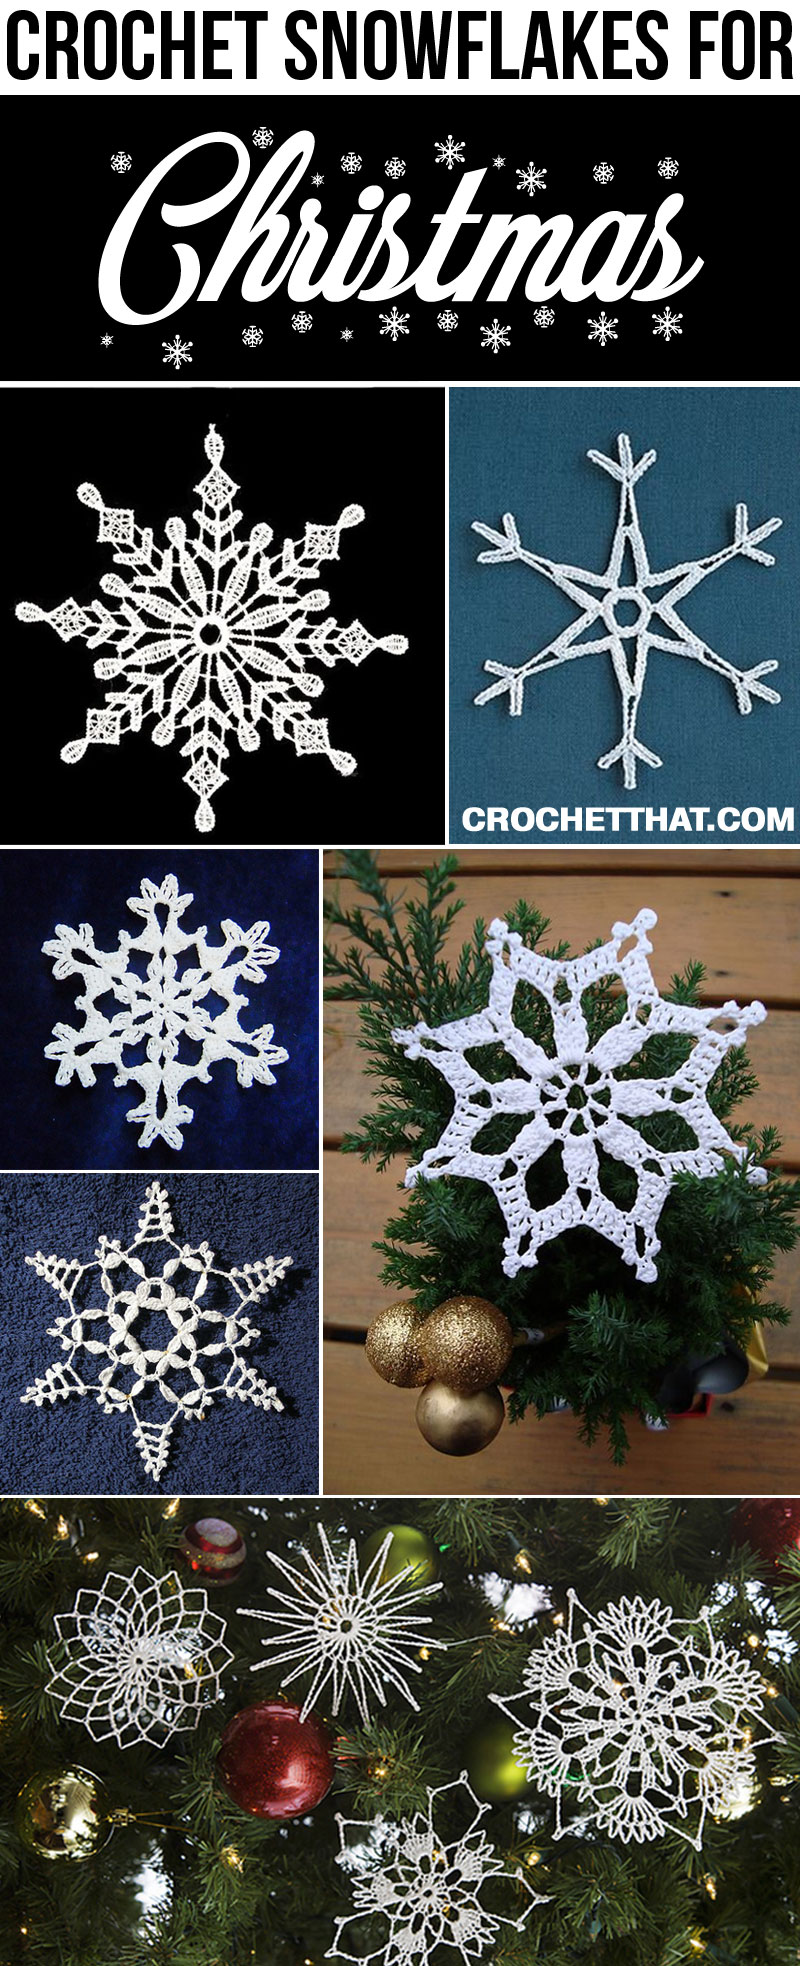 Easy Handmade Crochet Christmas Snowflake Ornaments